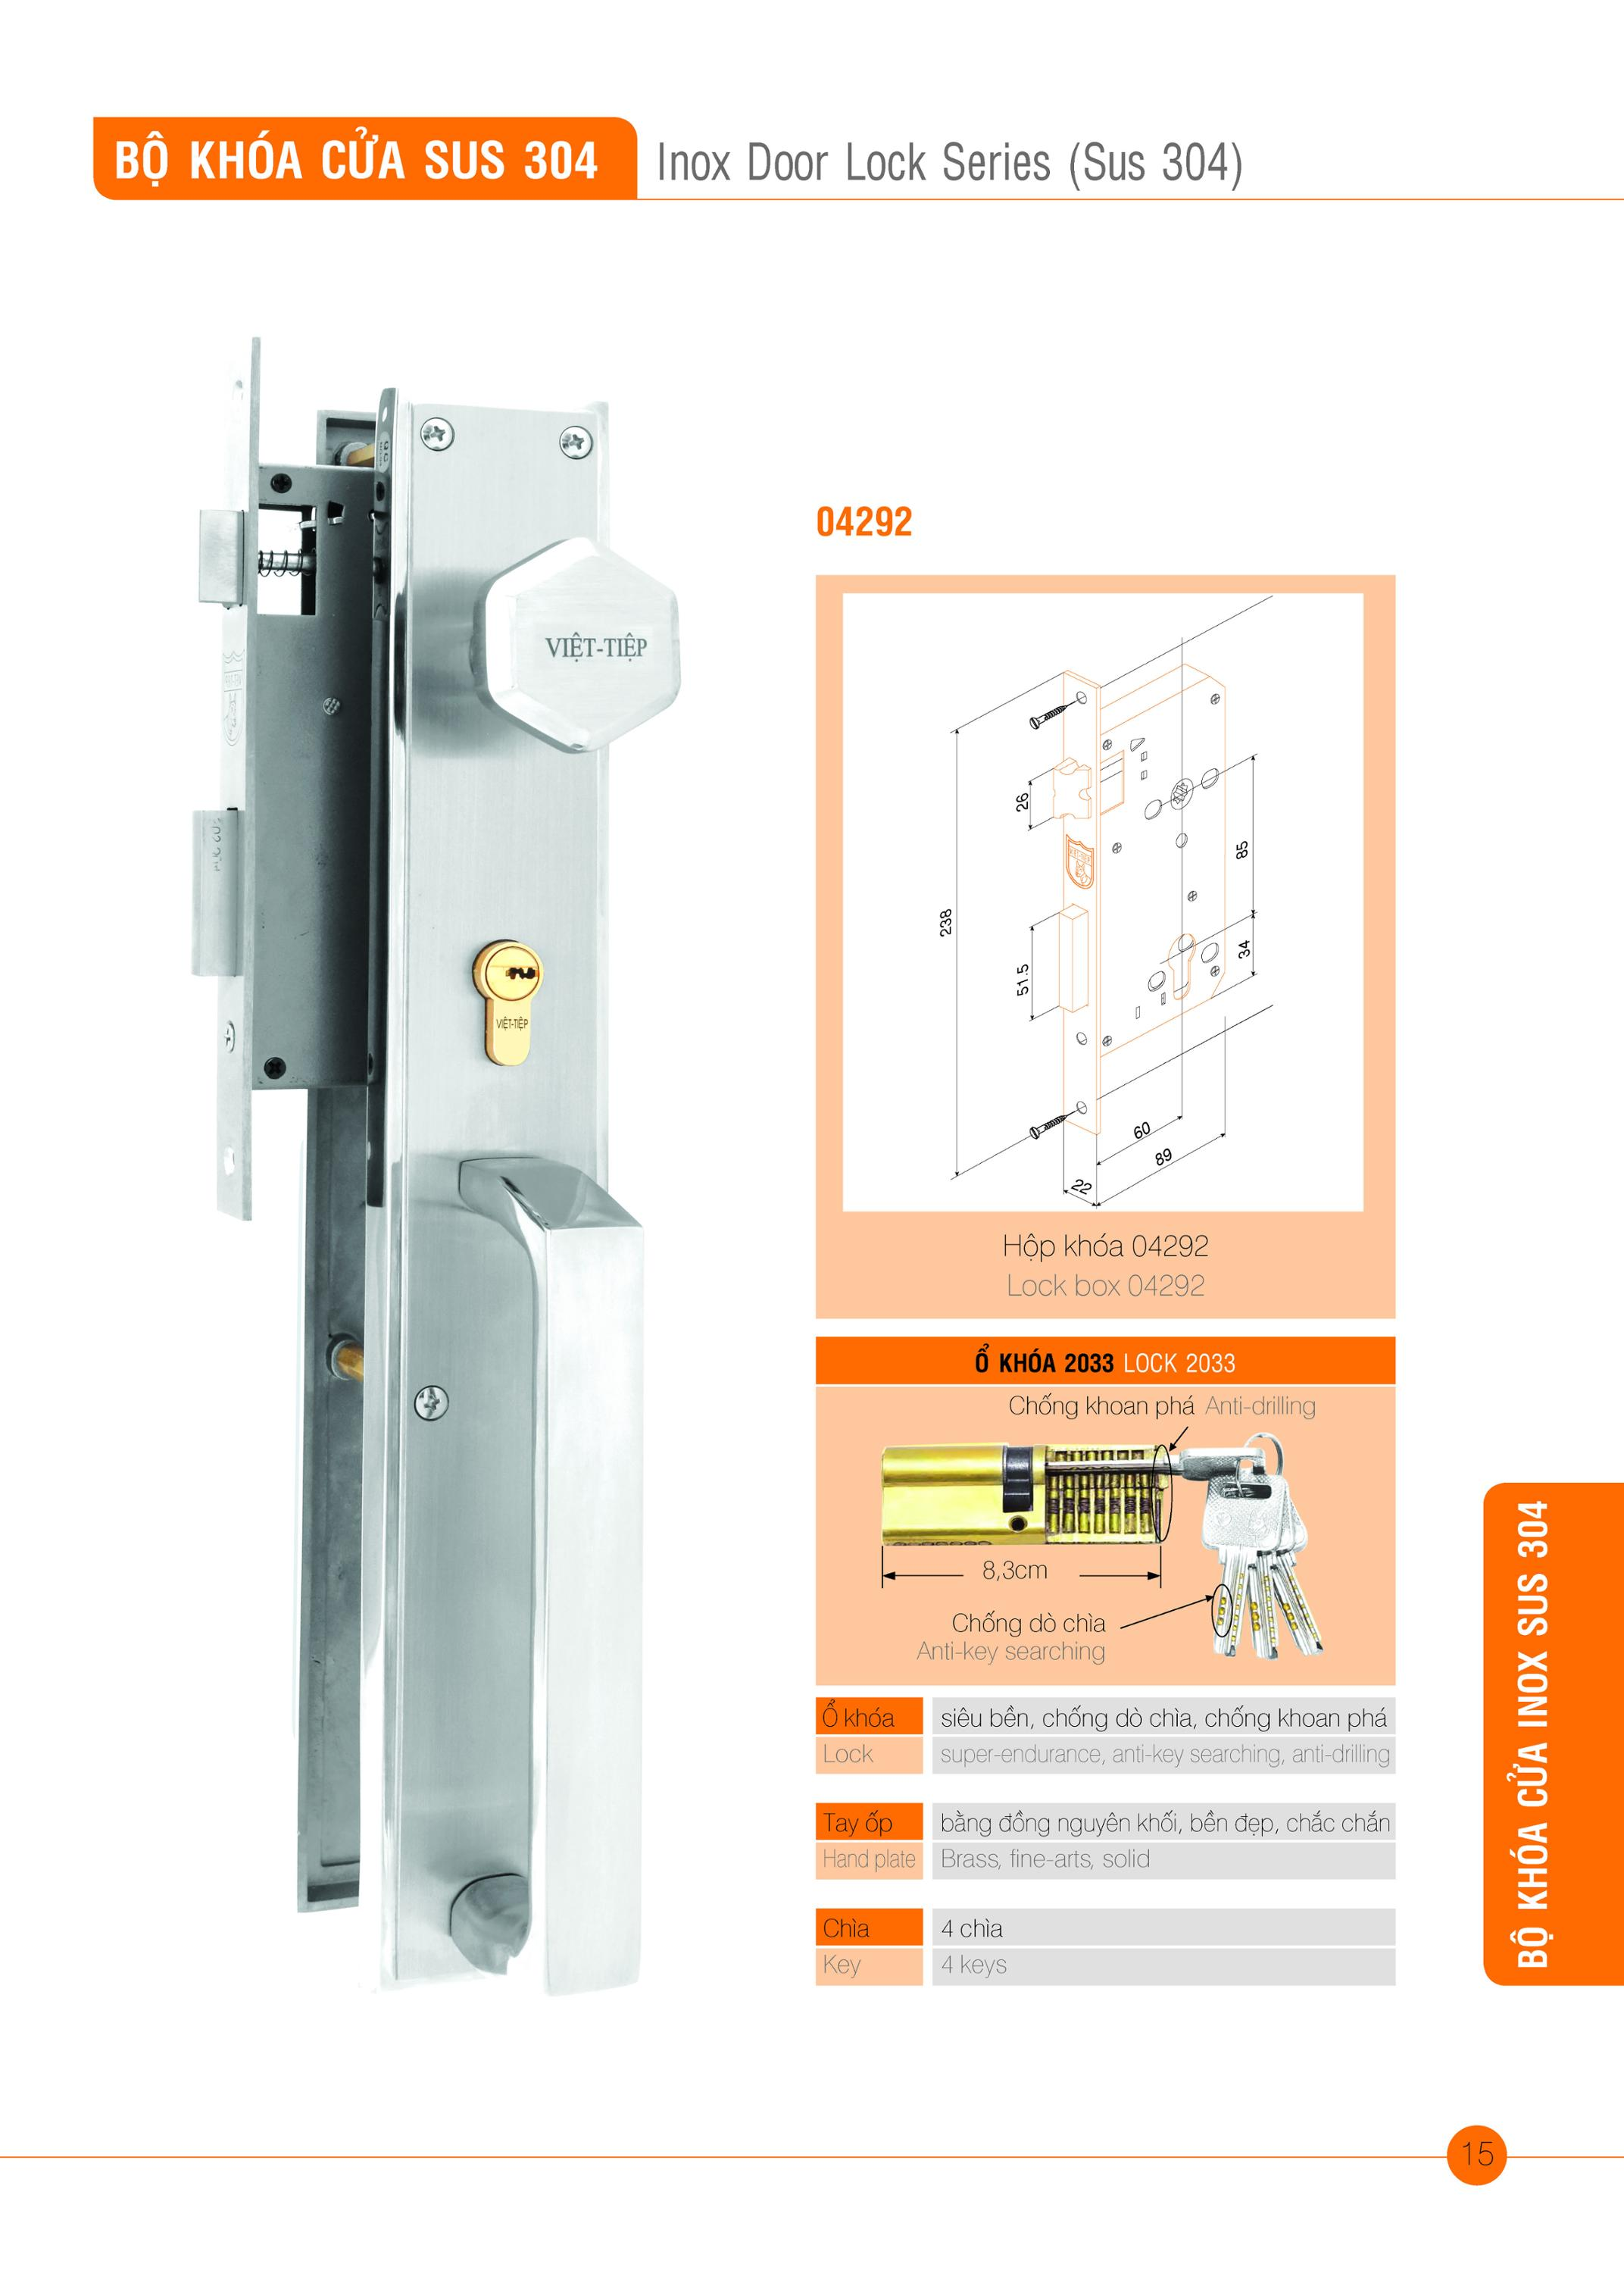 Inox Door Lock Series (Sus 304)